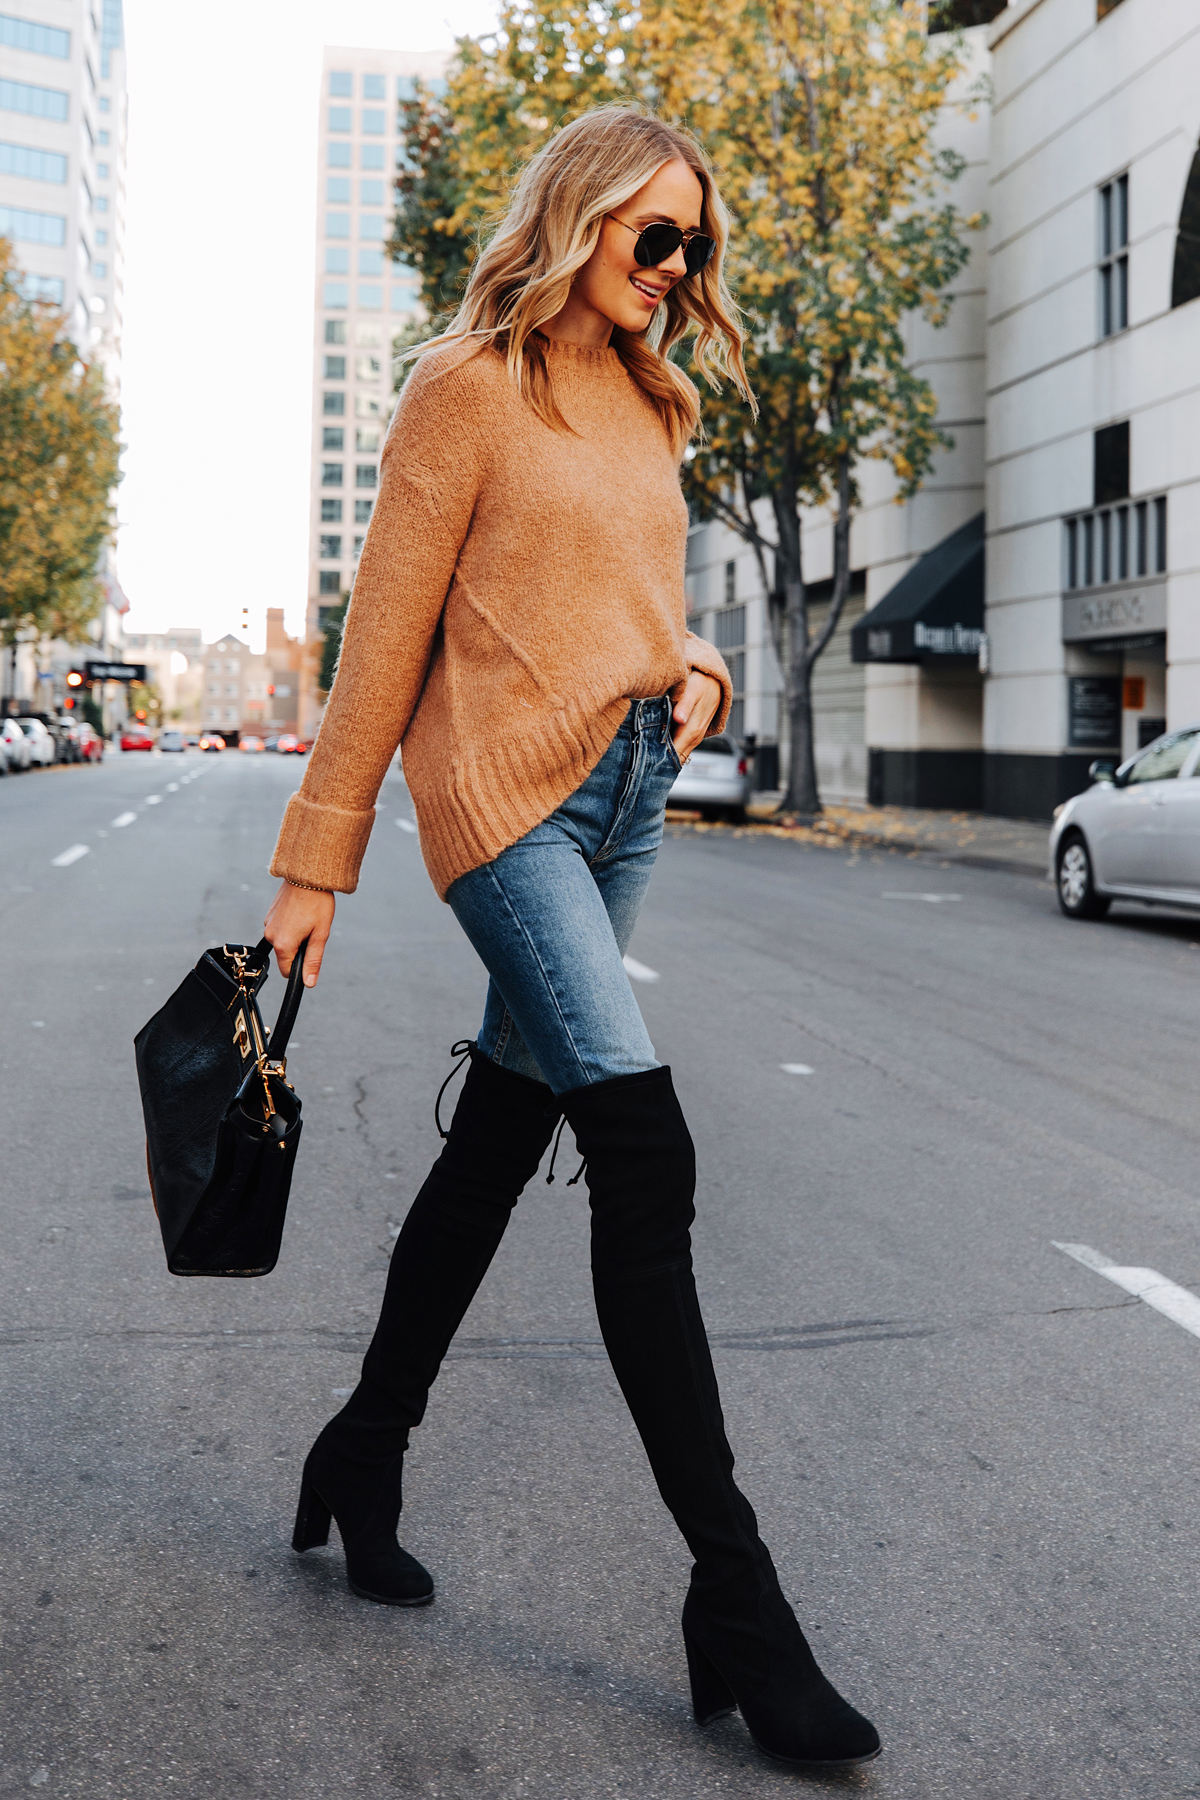 Fashion Jackson Wearing Camel Sweater Stuart Weitzman Black Over the Knee Boots Fendi Peekaboo Black Handbag 2